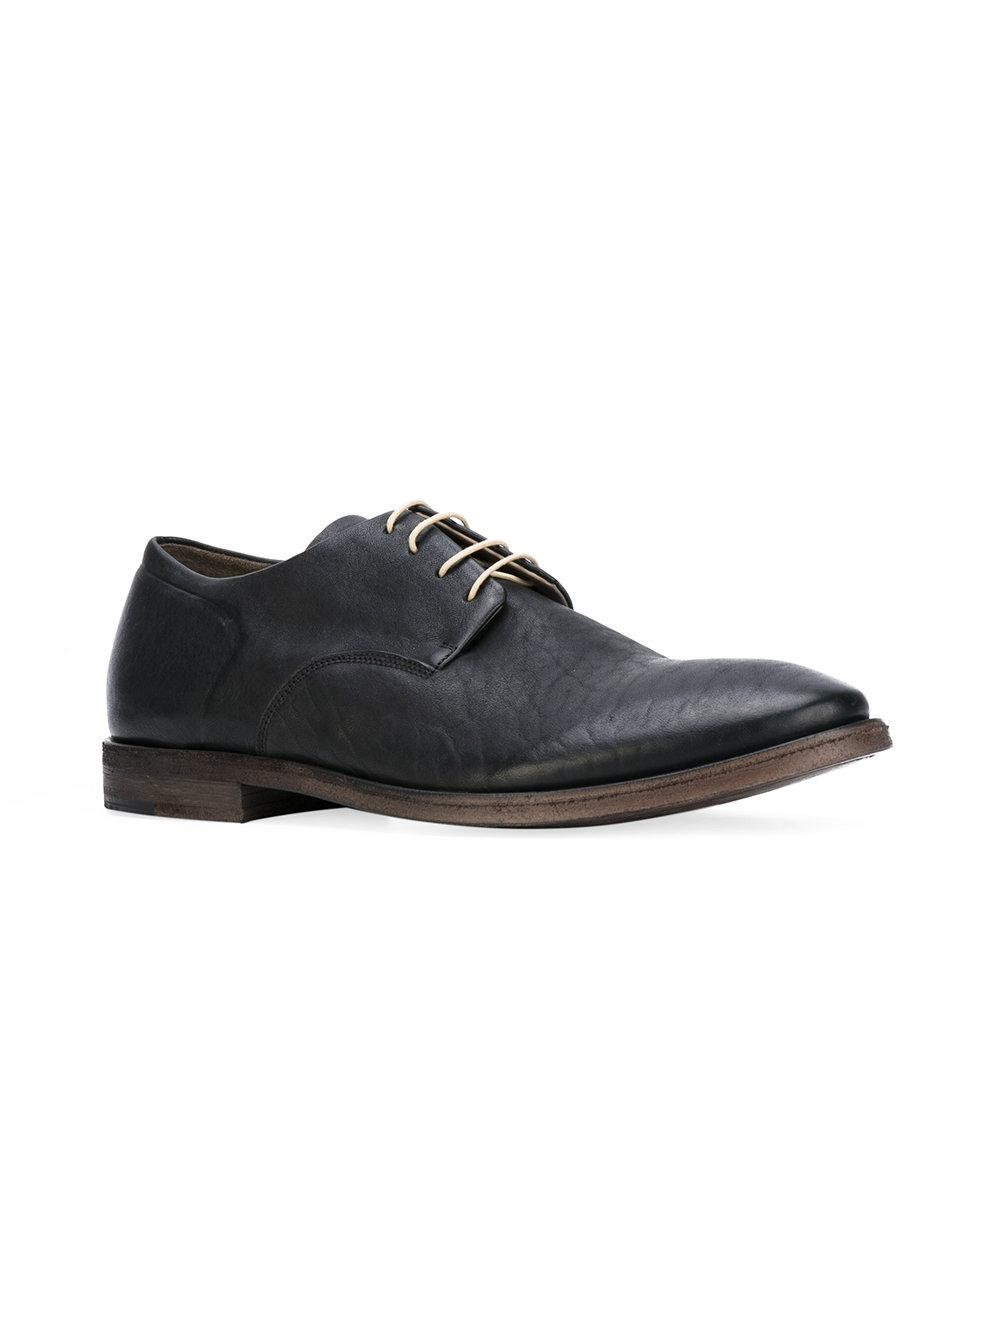 classic Derby shoes - Black Del Carlo